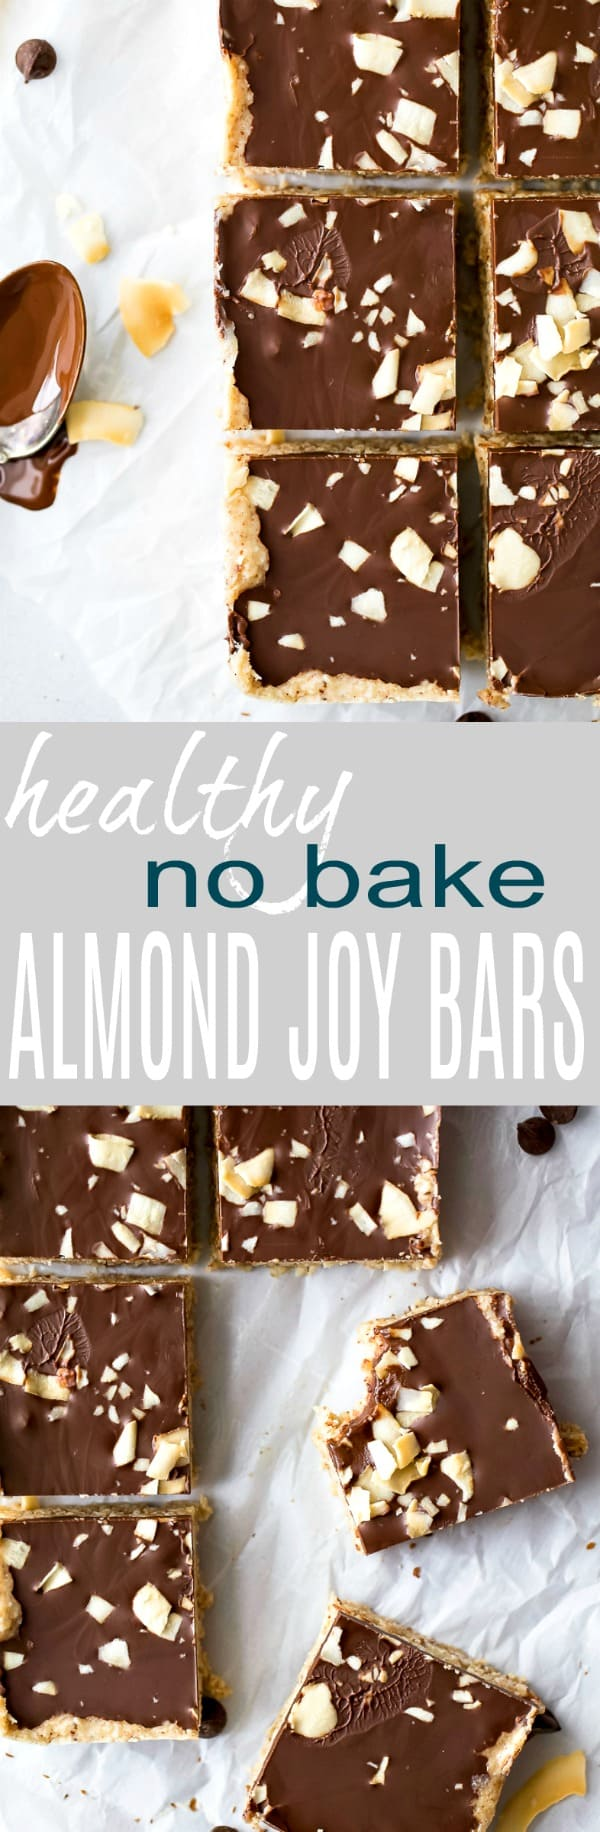 No Bake Almond Joy Bars a healthy dessert filled with coconut and almond butter then topped with chocolate for the ultimate bite. These healthy vegan bars are sure to satisfy your sweet tooth!